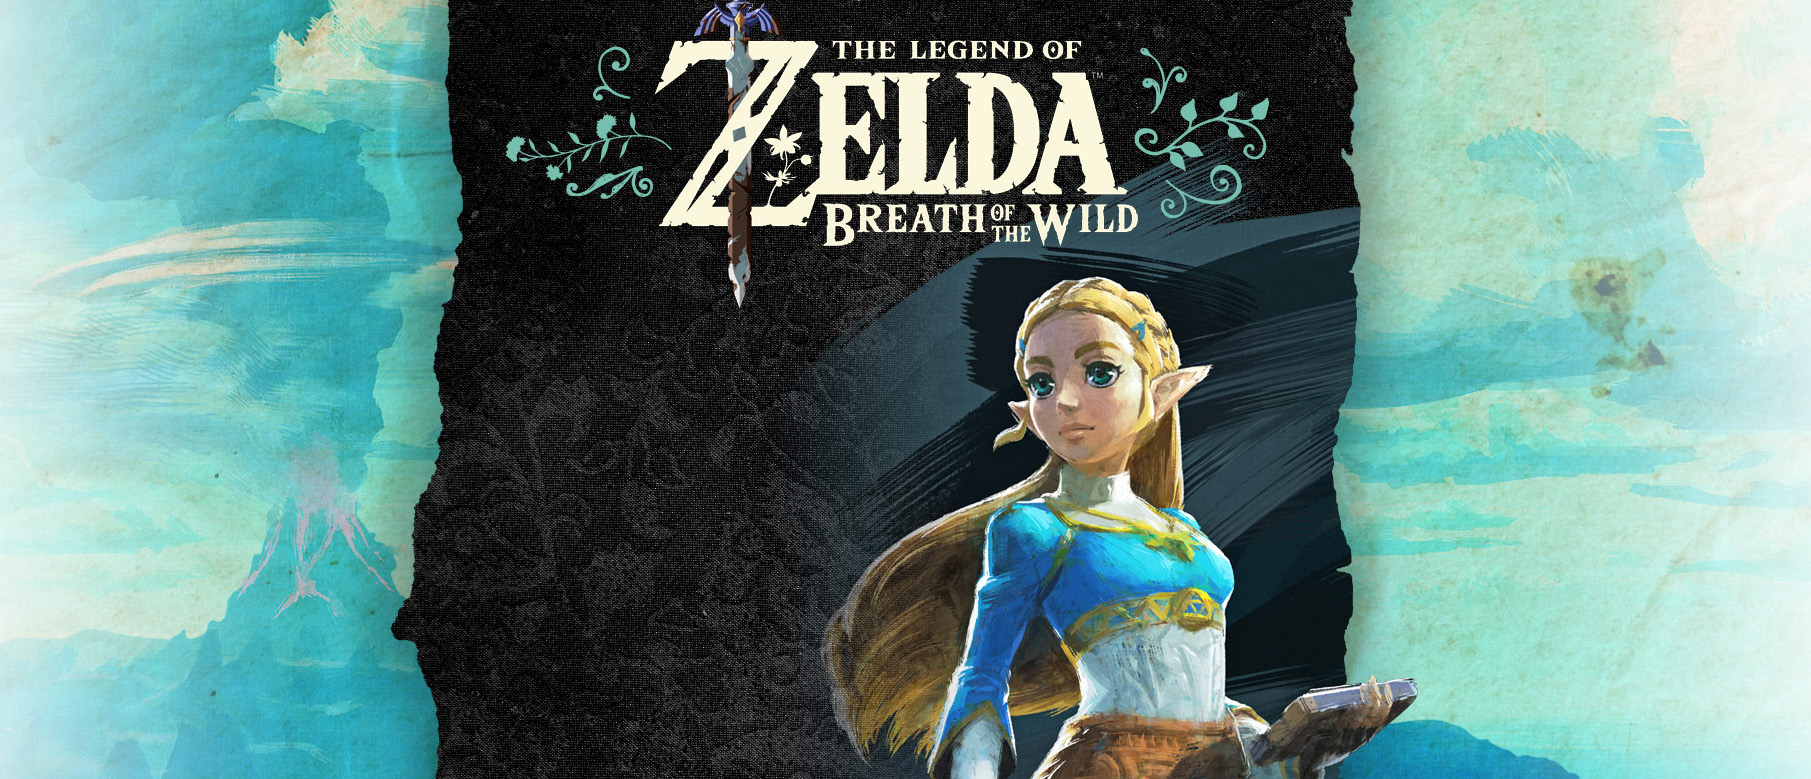 Изображение к The Legend of Zelda: Breath of the Wild на обложке Game Informer